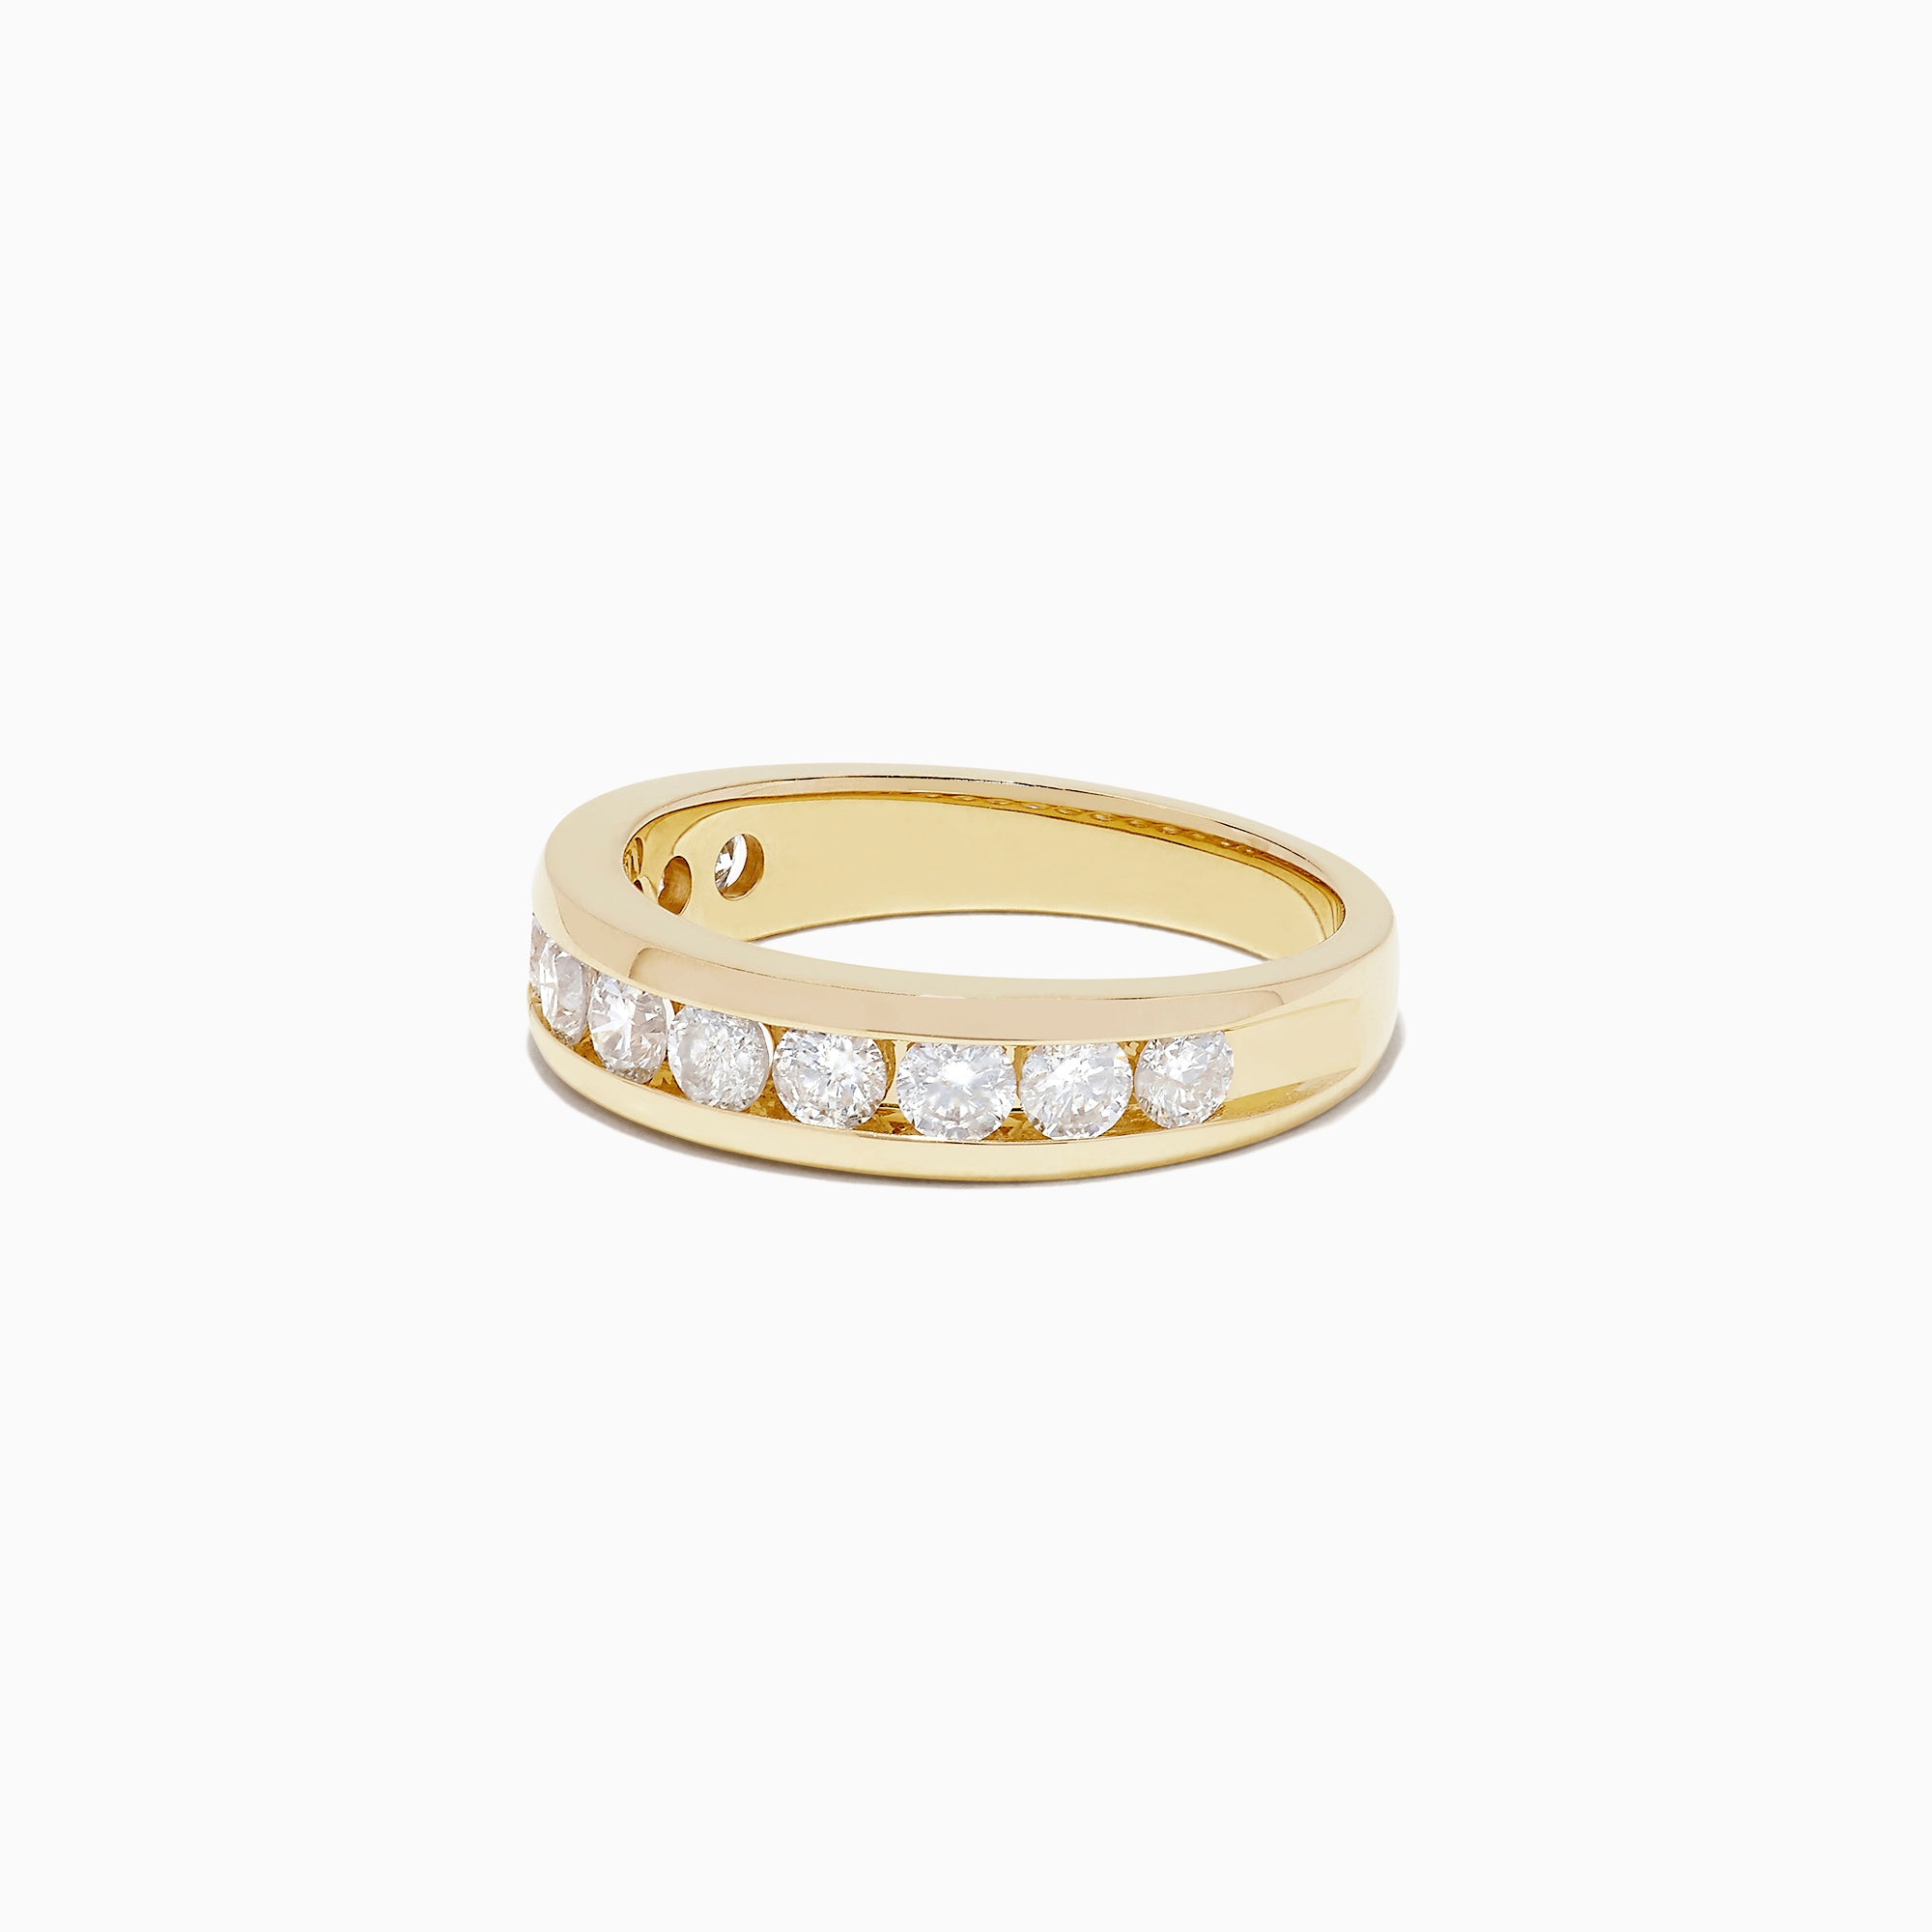 Effy D'Oro 14K Yellow Gold Channel Set Diamond Ring, 0.98 TCW